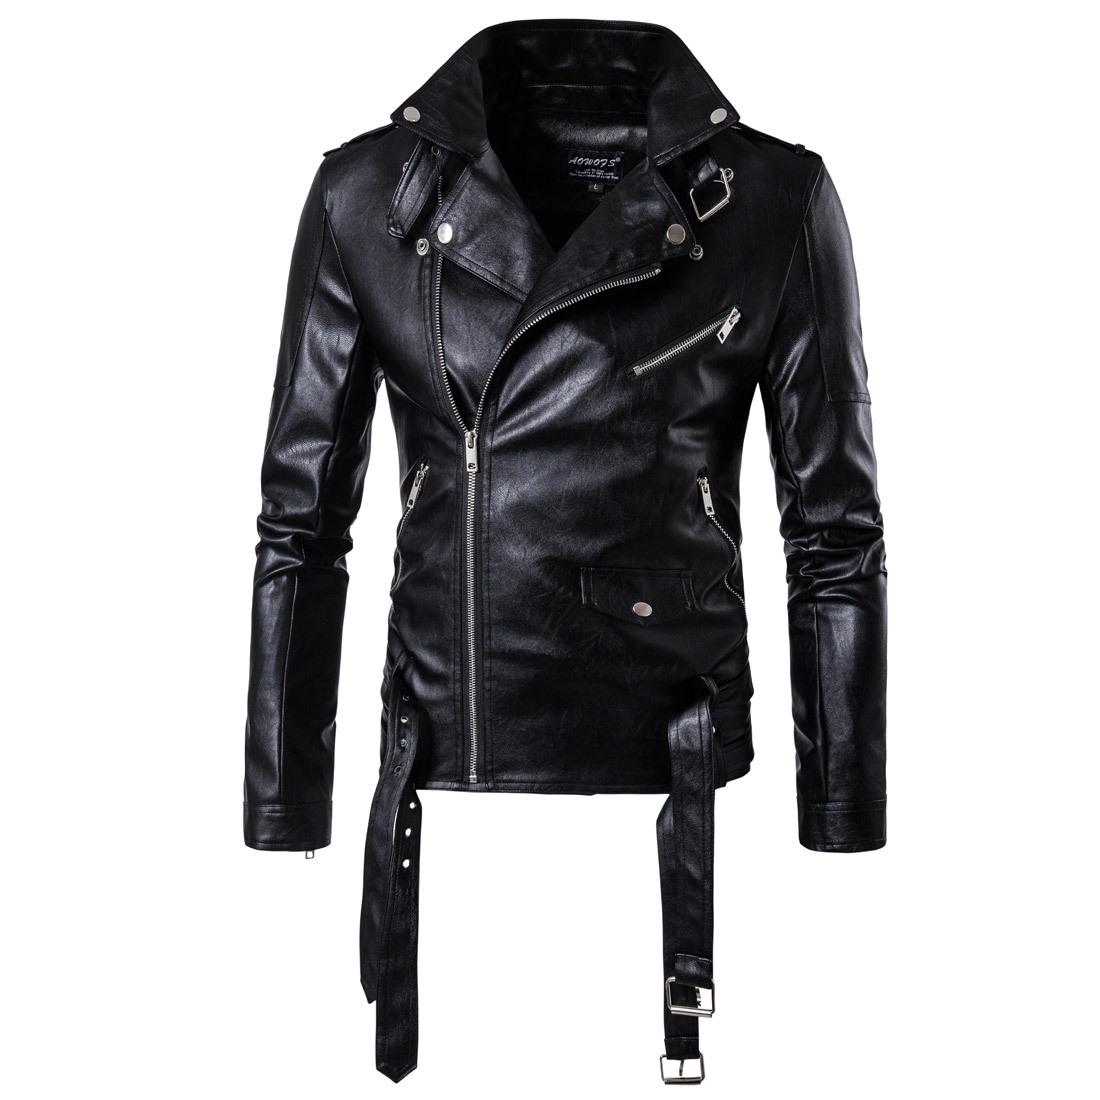 Men Motorcycle leather jackets Male Casual Lapel Coats Brand New clothing European Size Slim Fit Punk Jacket D101